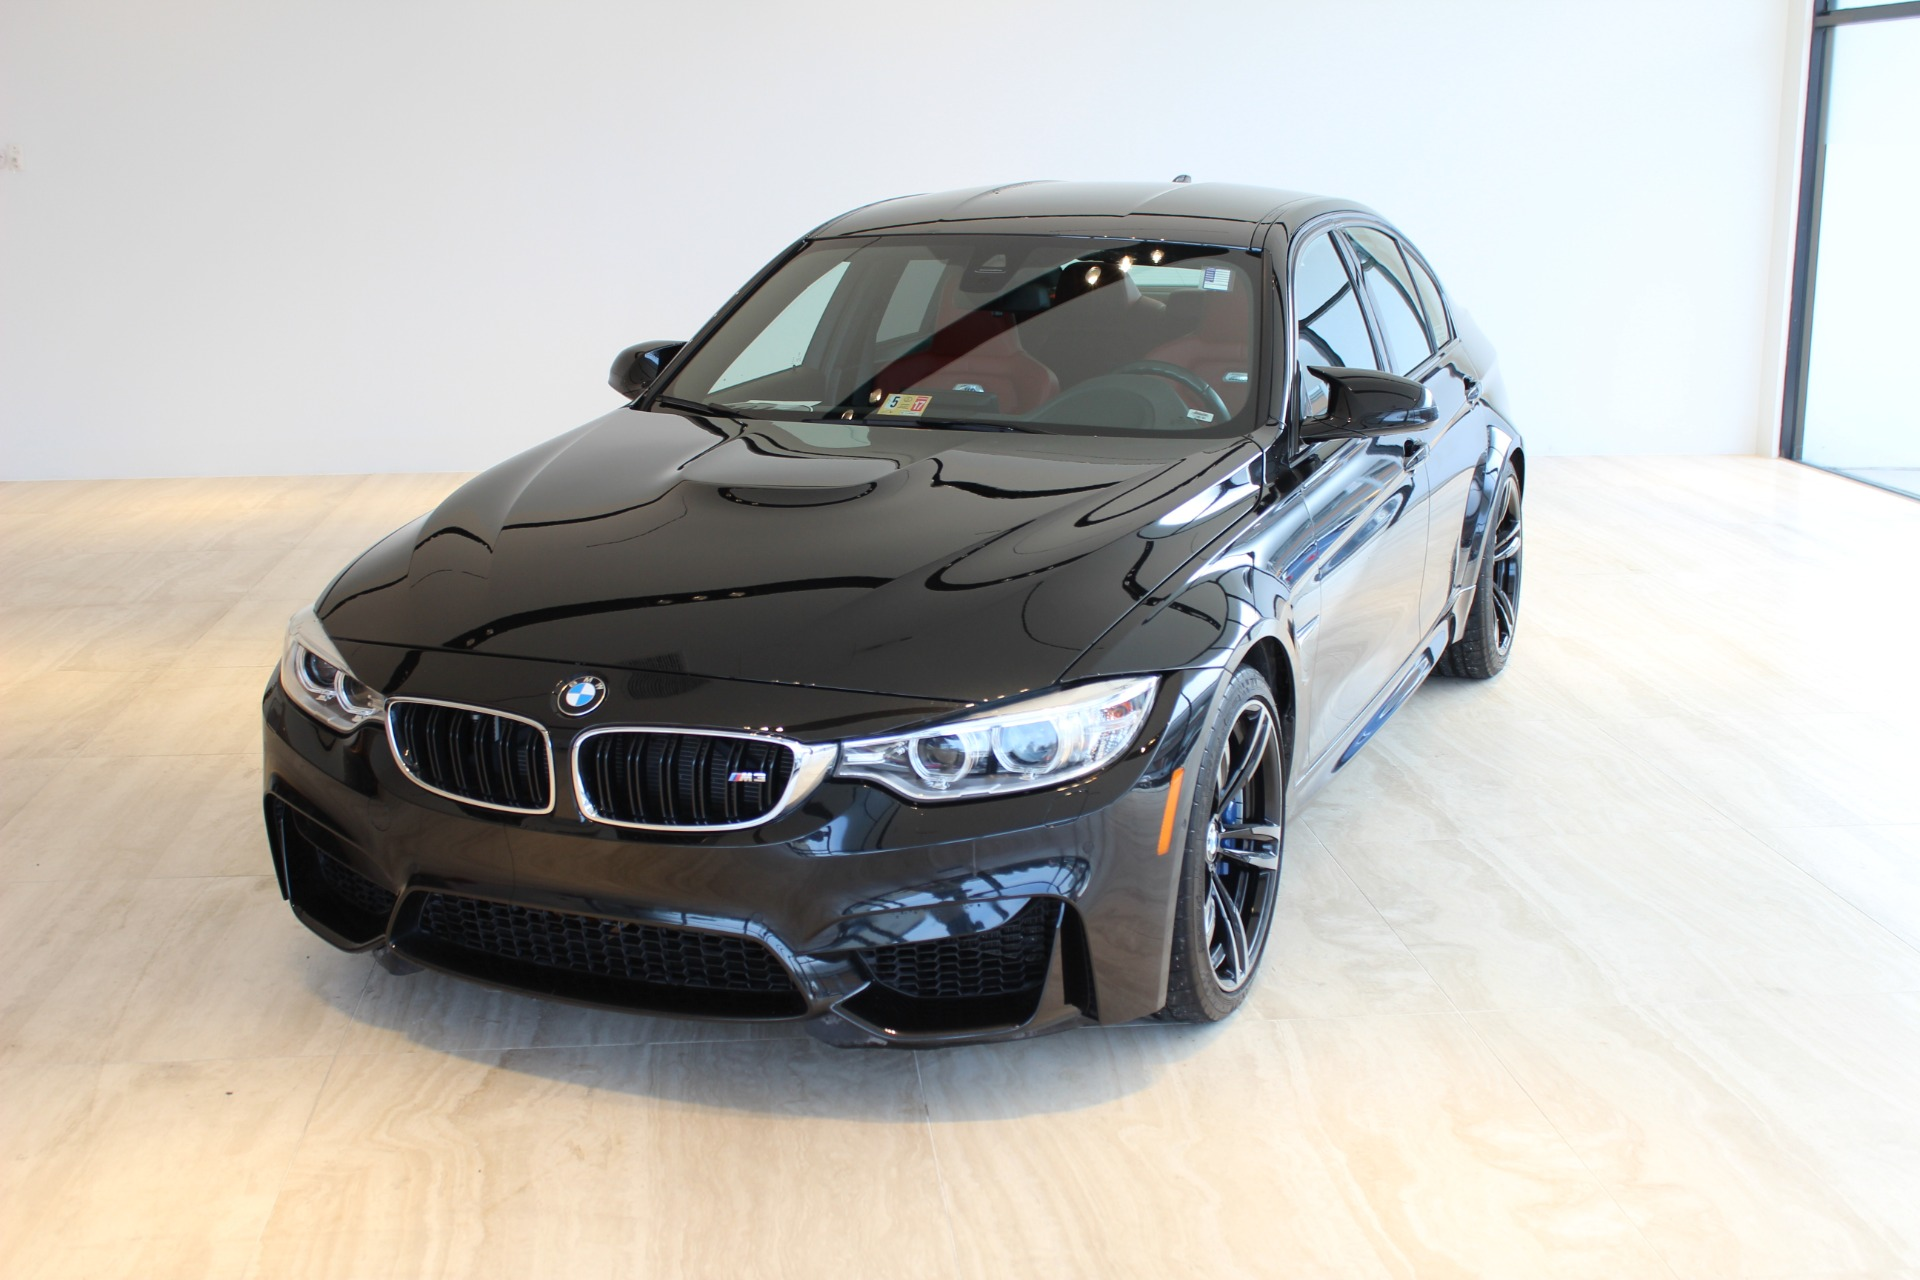 2015 bmw m3 stock 6nc055910b for sale near vienna va va bmw dealer for sale in vienna va. Black Bedroom Furniture Sets. Home Design Ideas